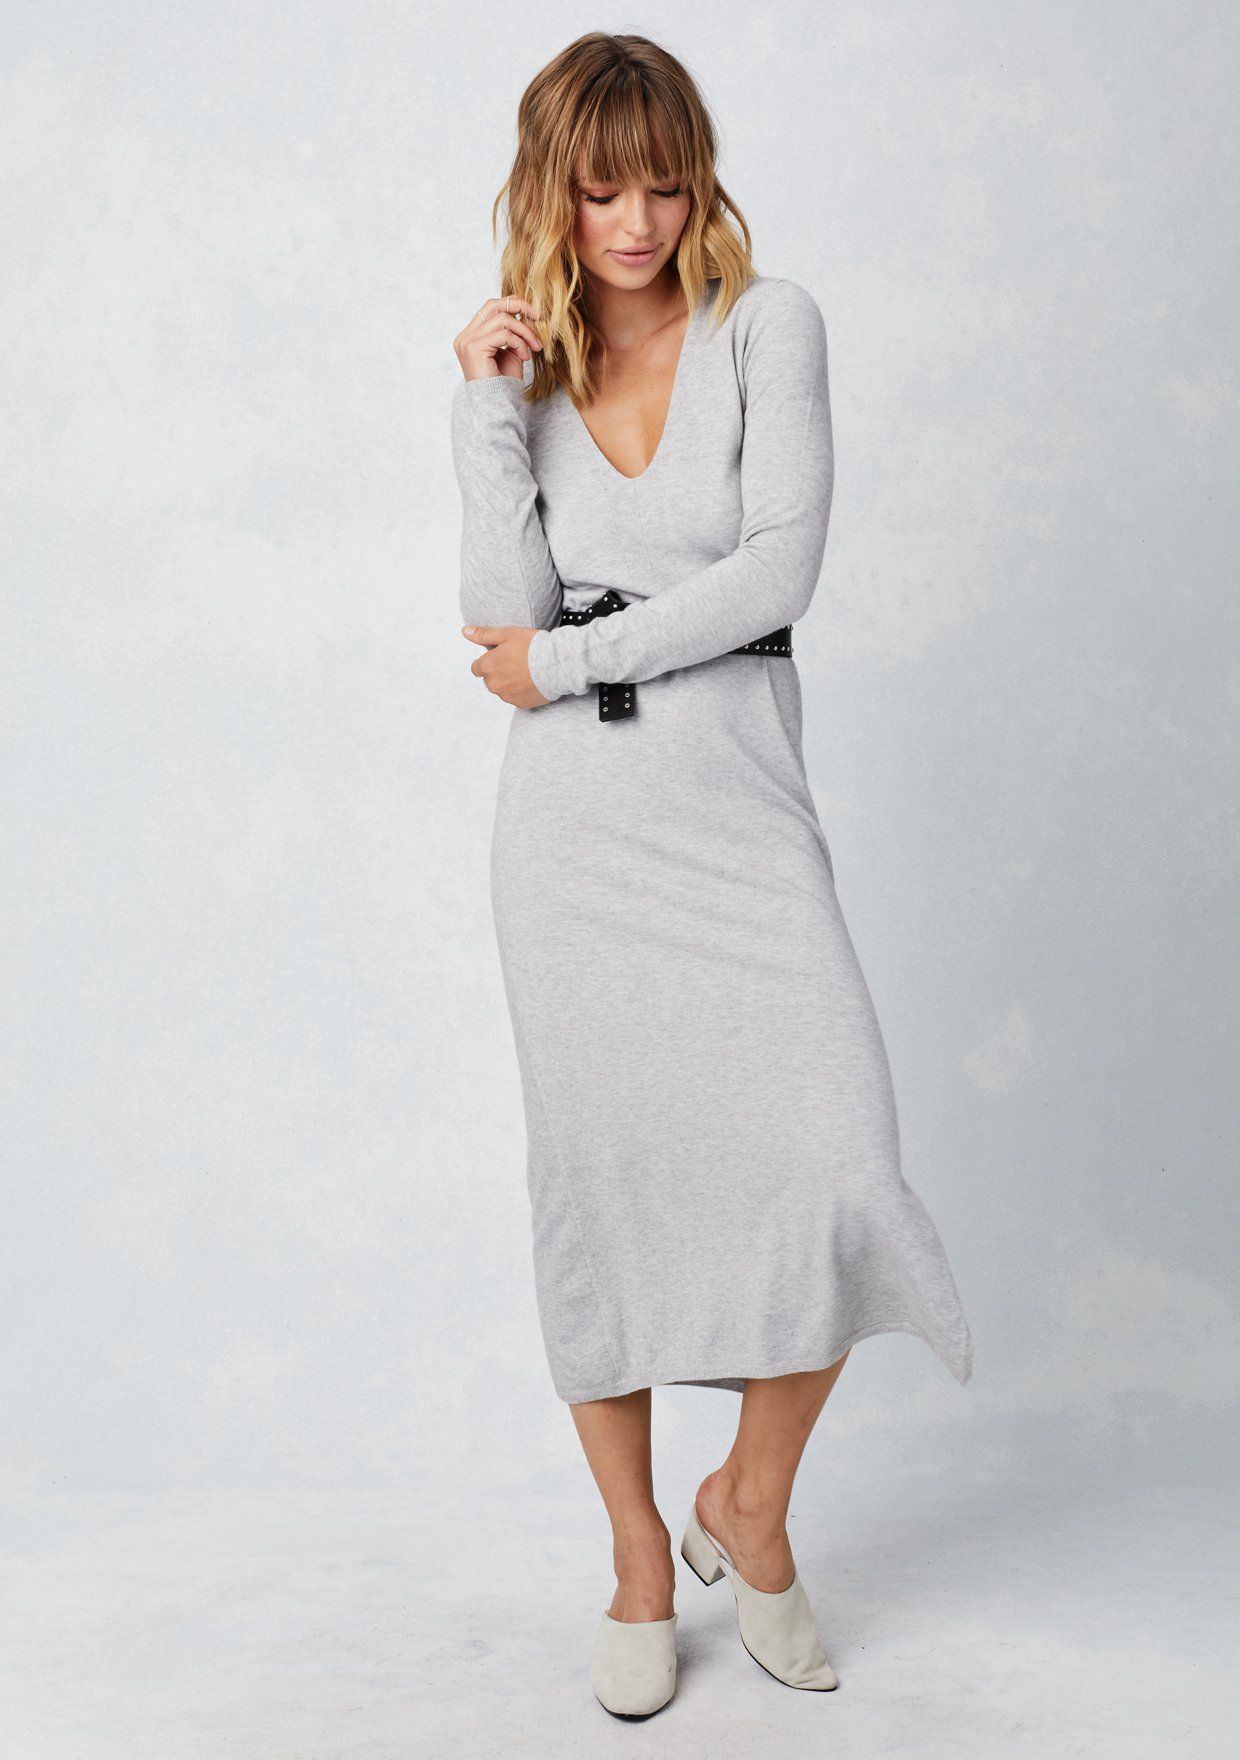 Eugenia sweater dress business professional attire professional